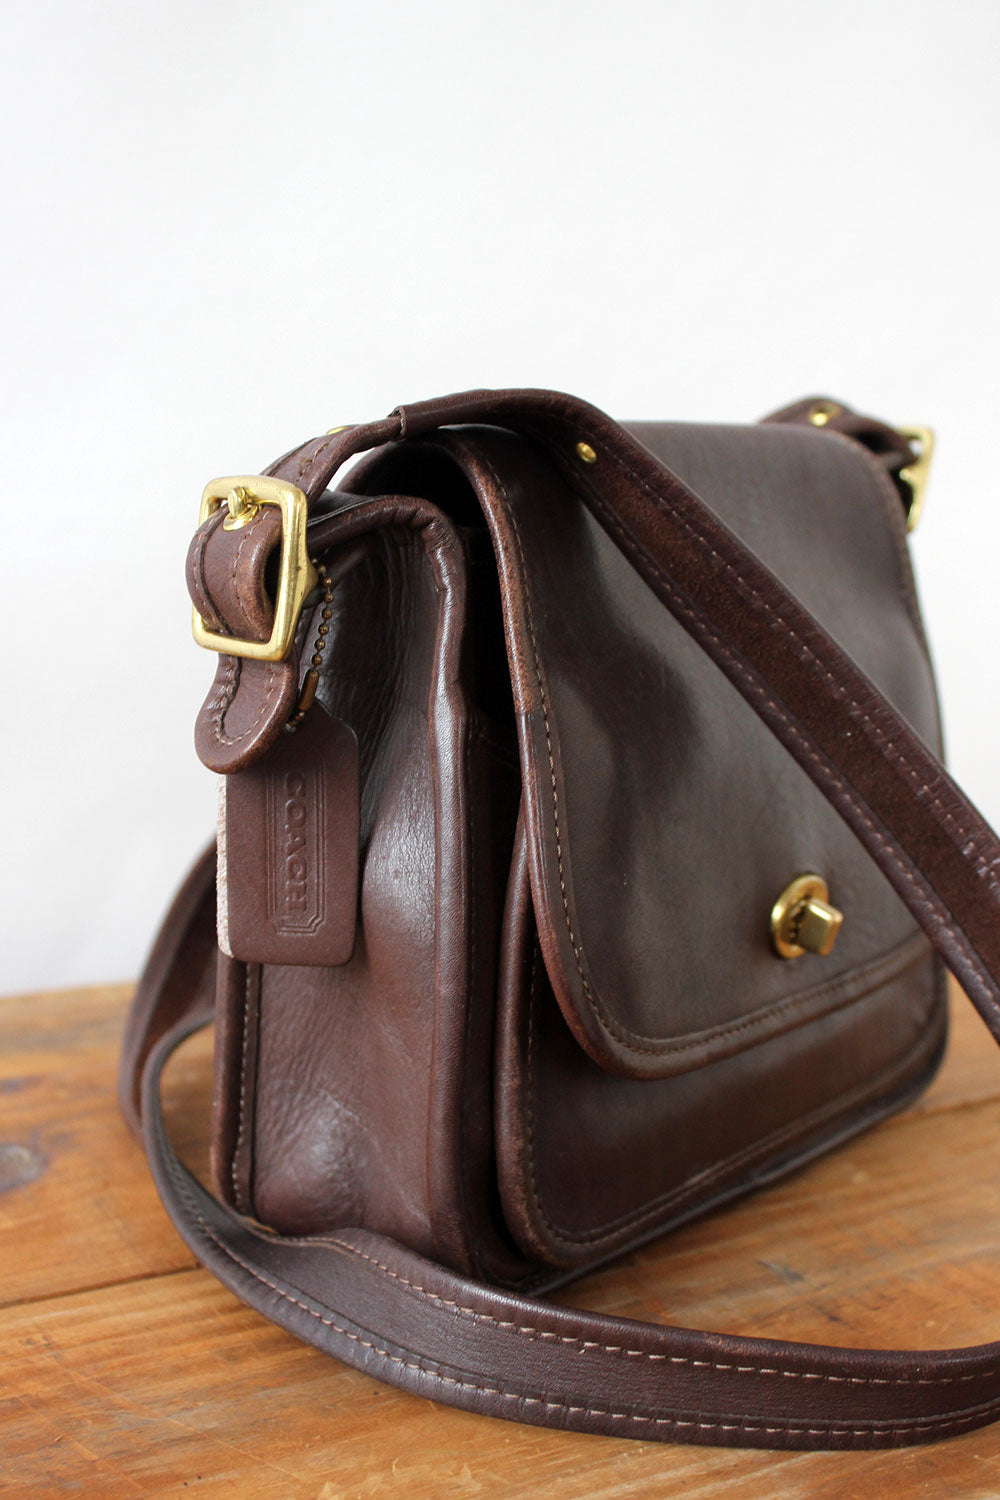 Umber Coach Turnlock Satchel